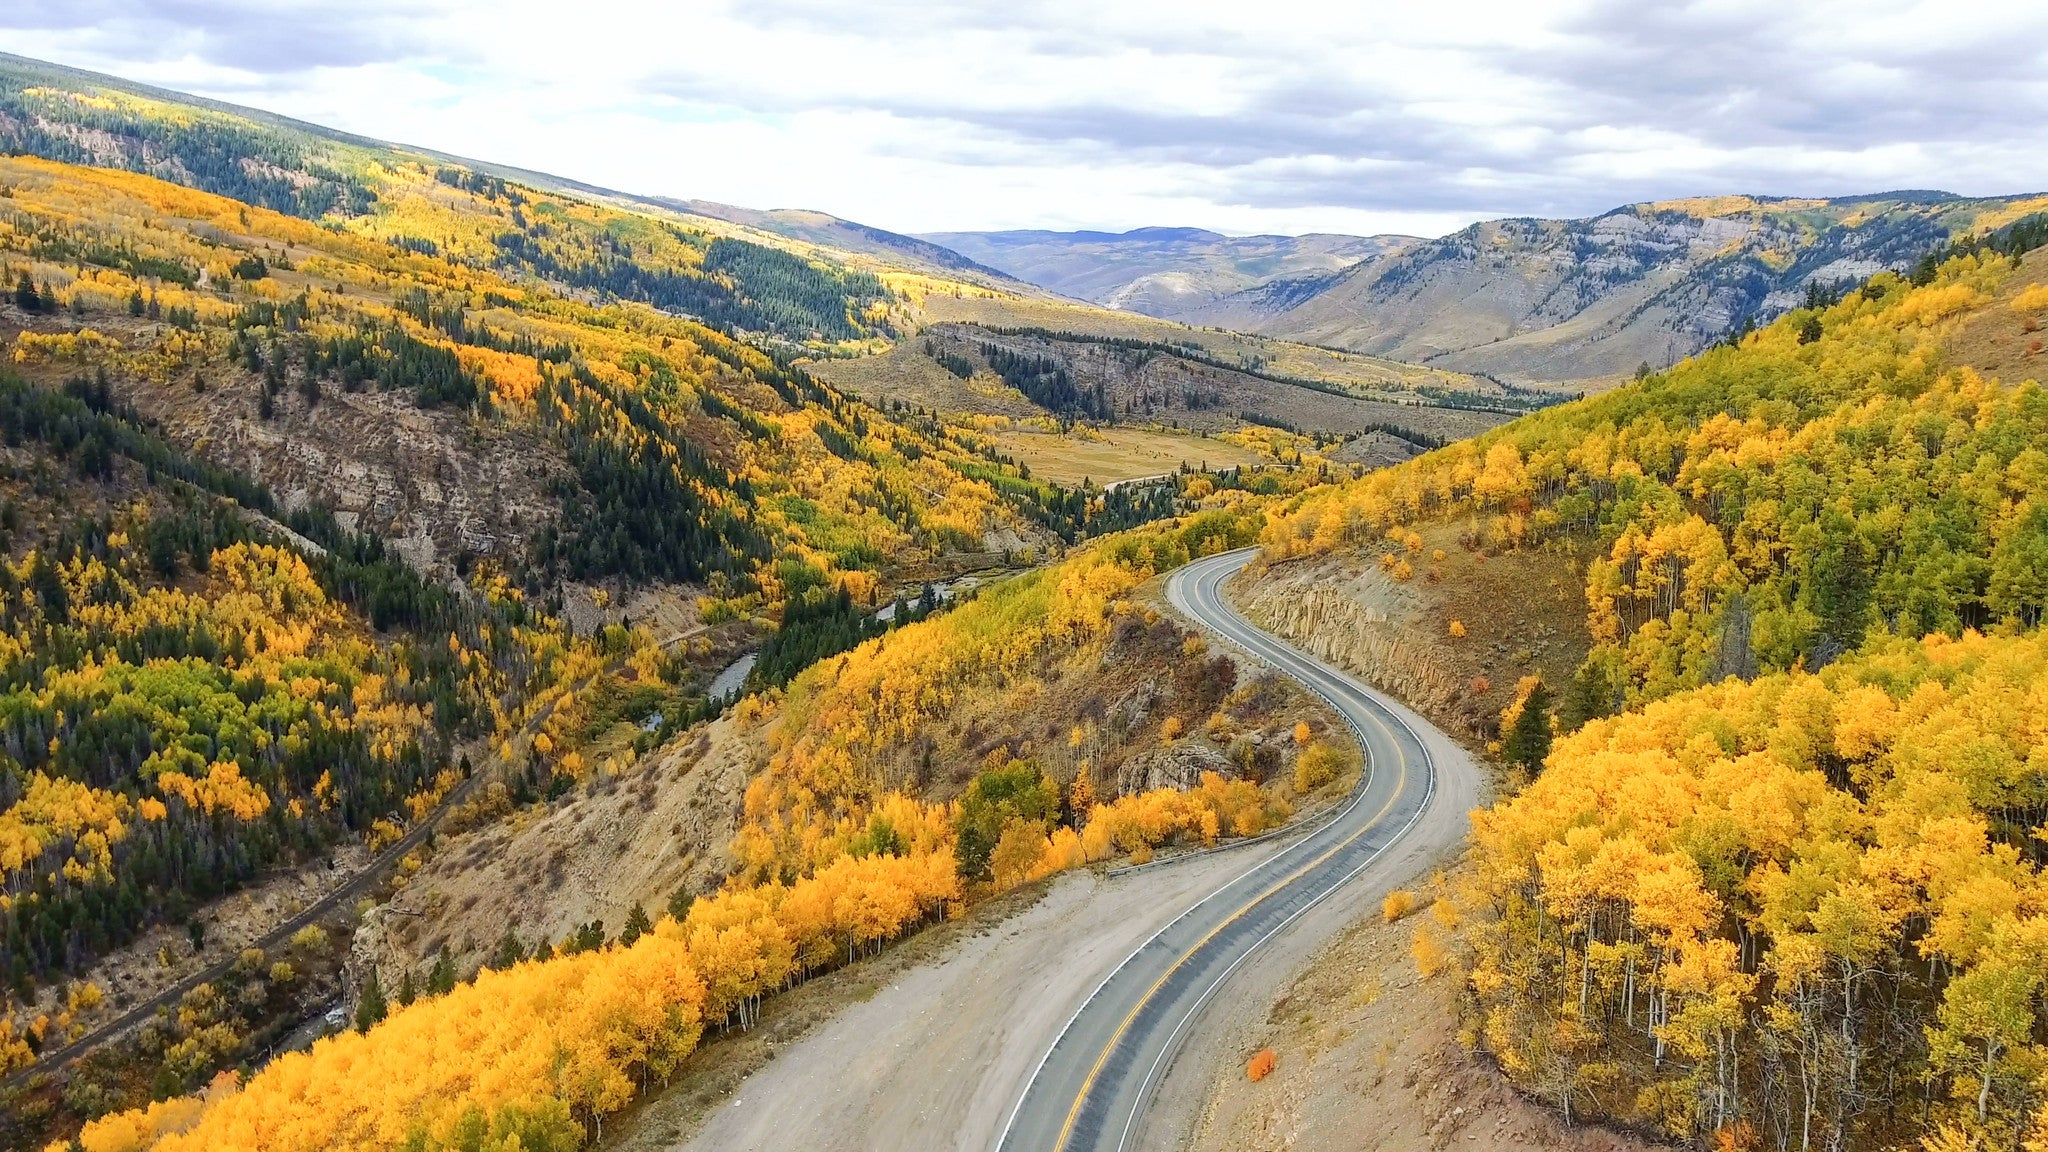 Winding road through Colorado Rocky Mountains and fall foliage